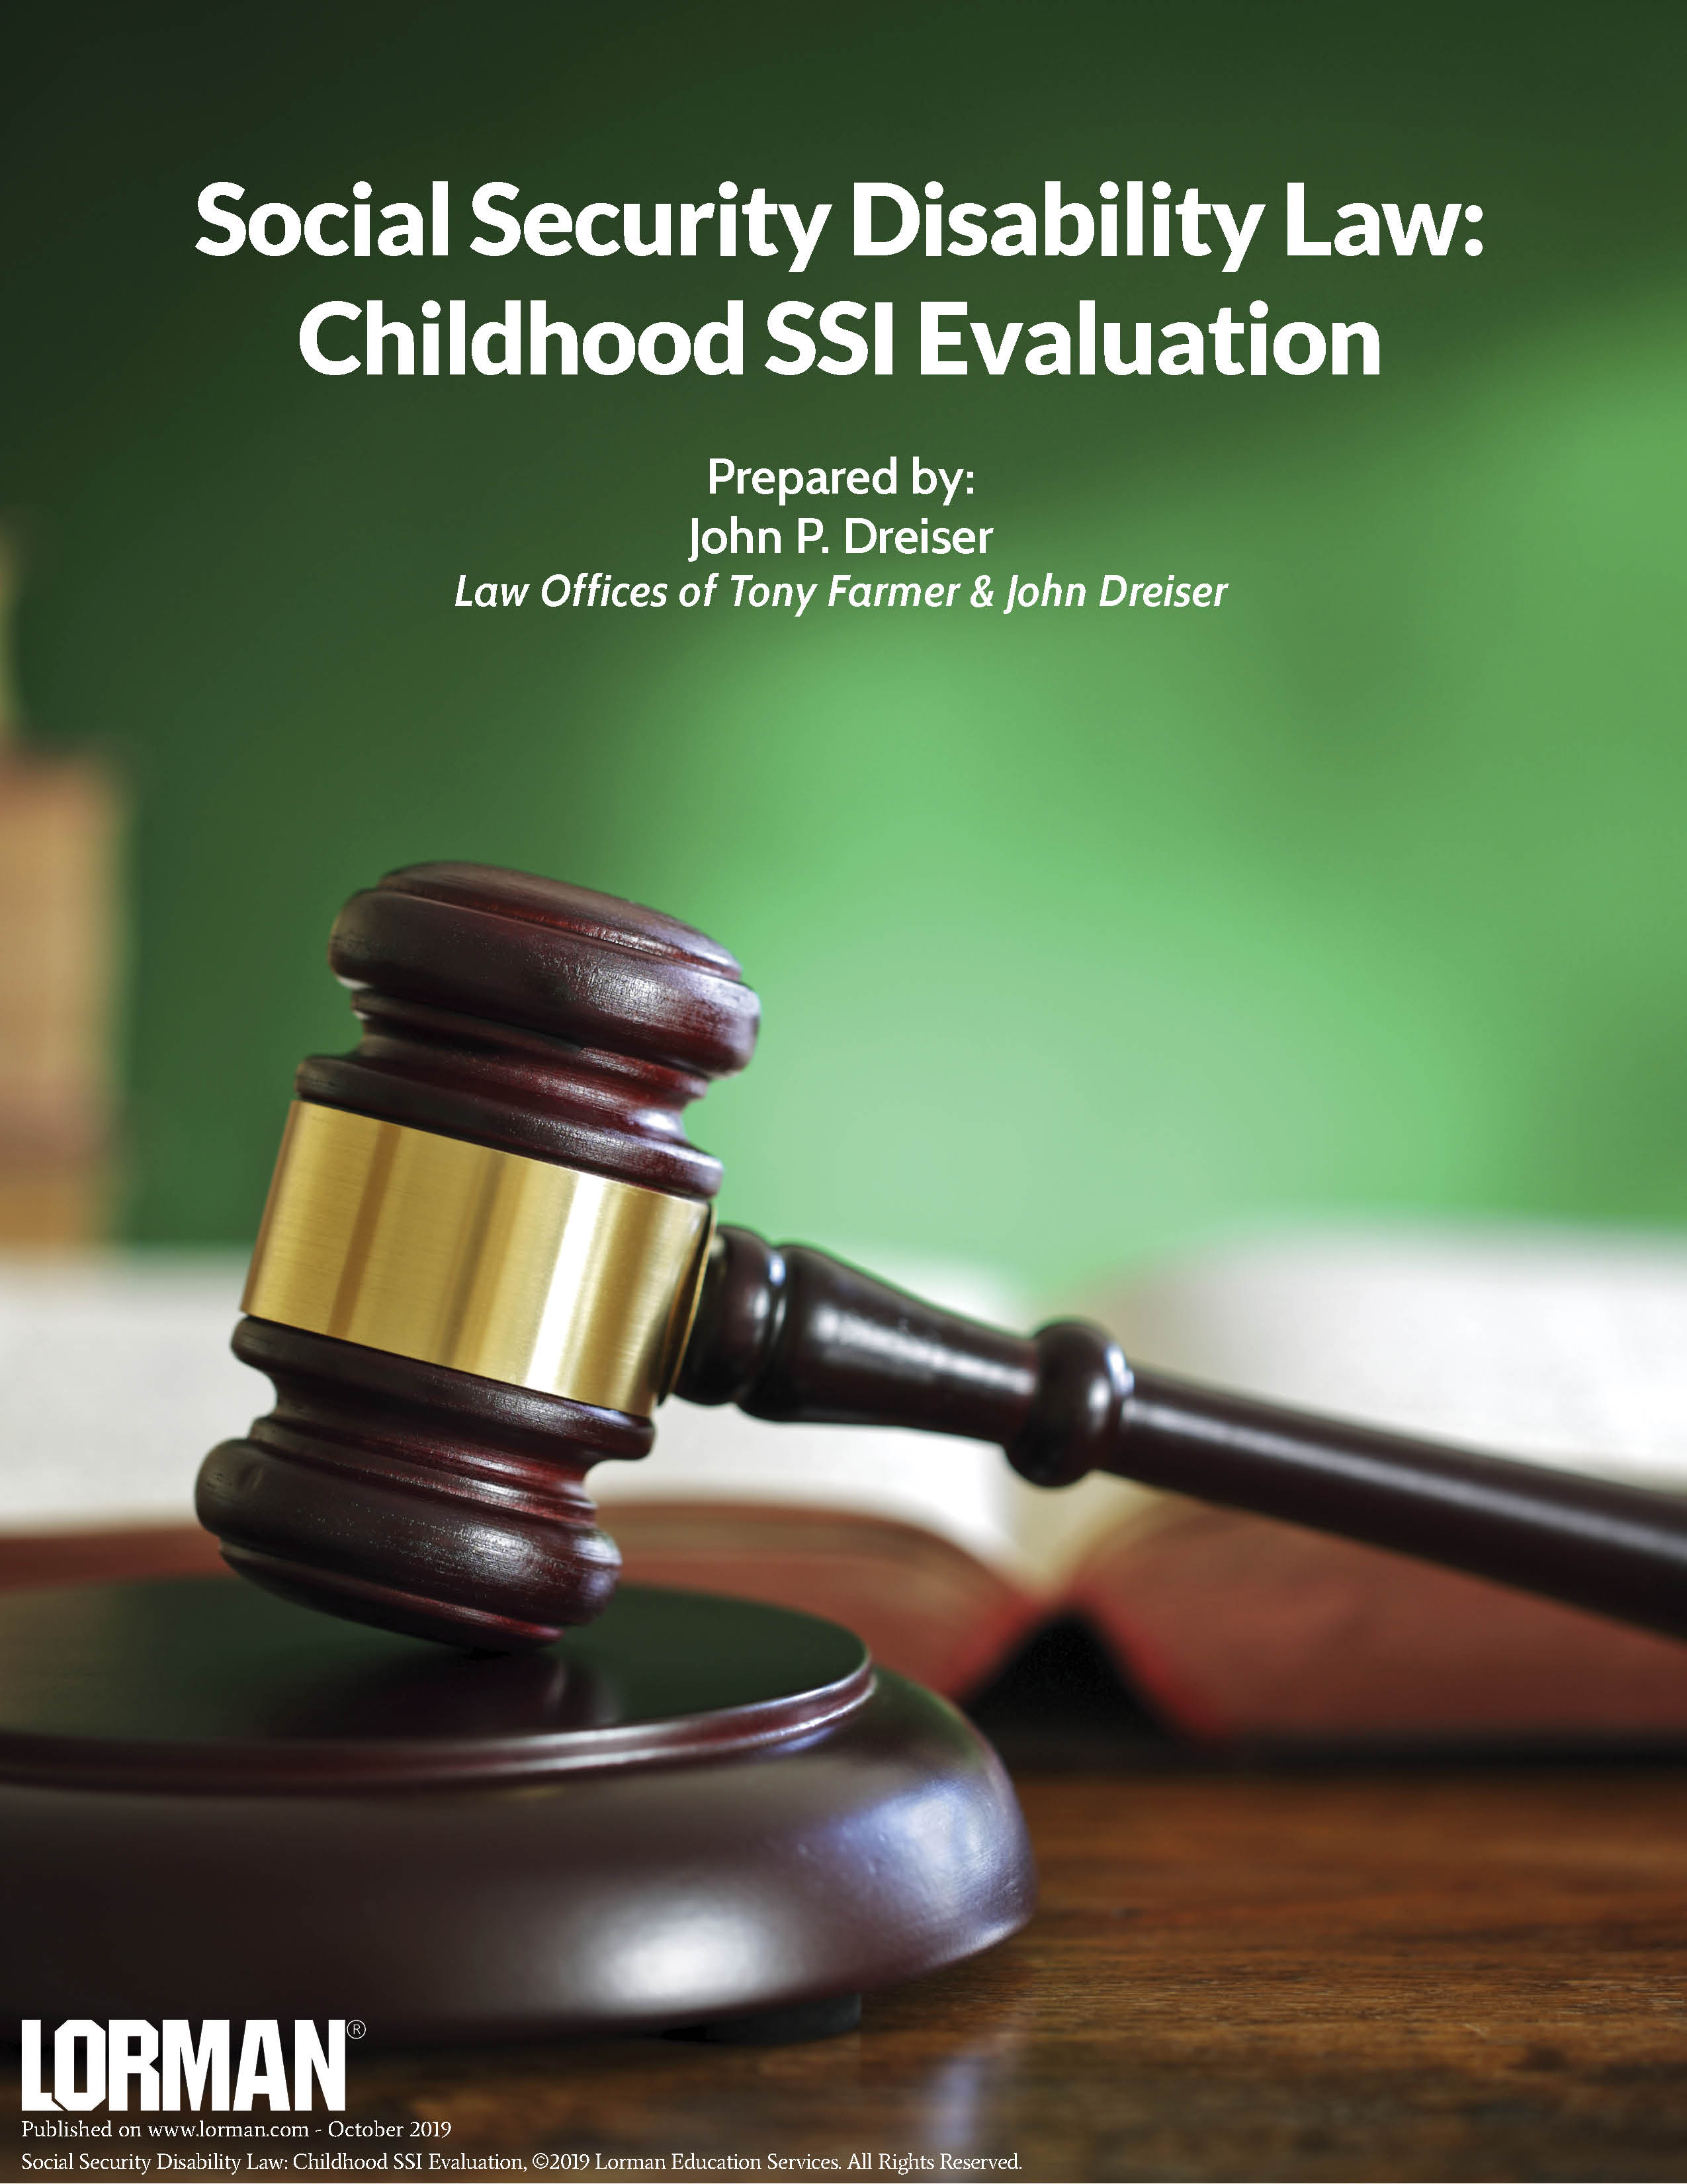 Social Security Disability Law: Childhood SSI Evaluation